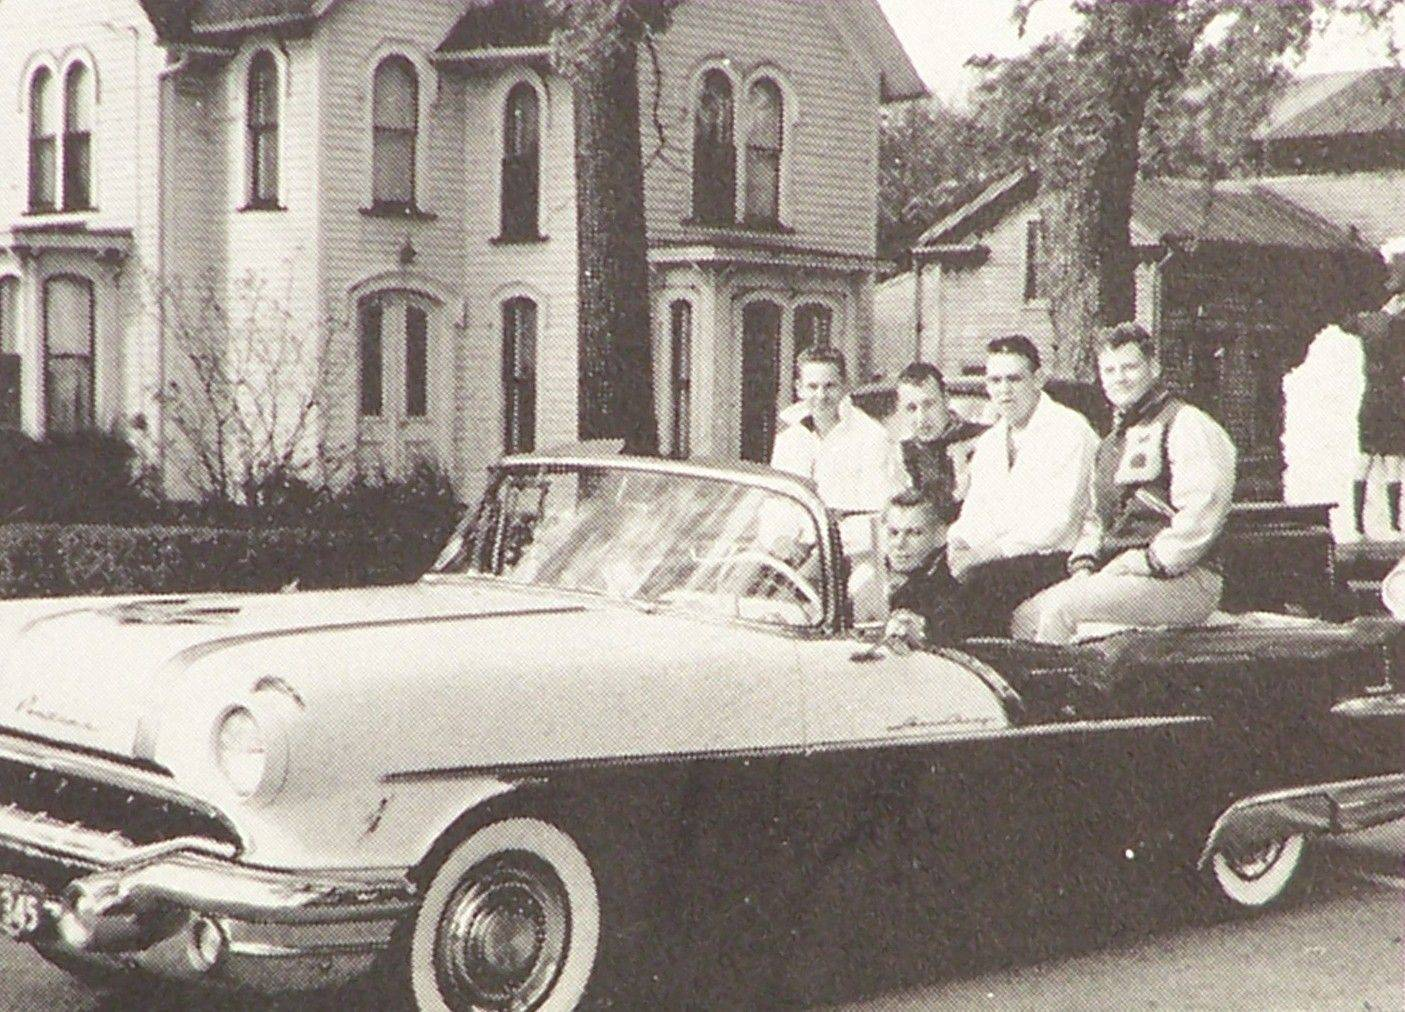 Batavia High School football players ride in a Pontiac convertible in the 1959 homecoming parade.